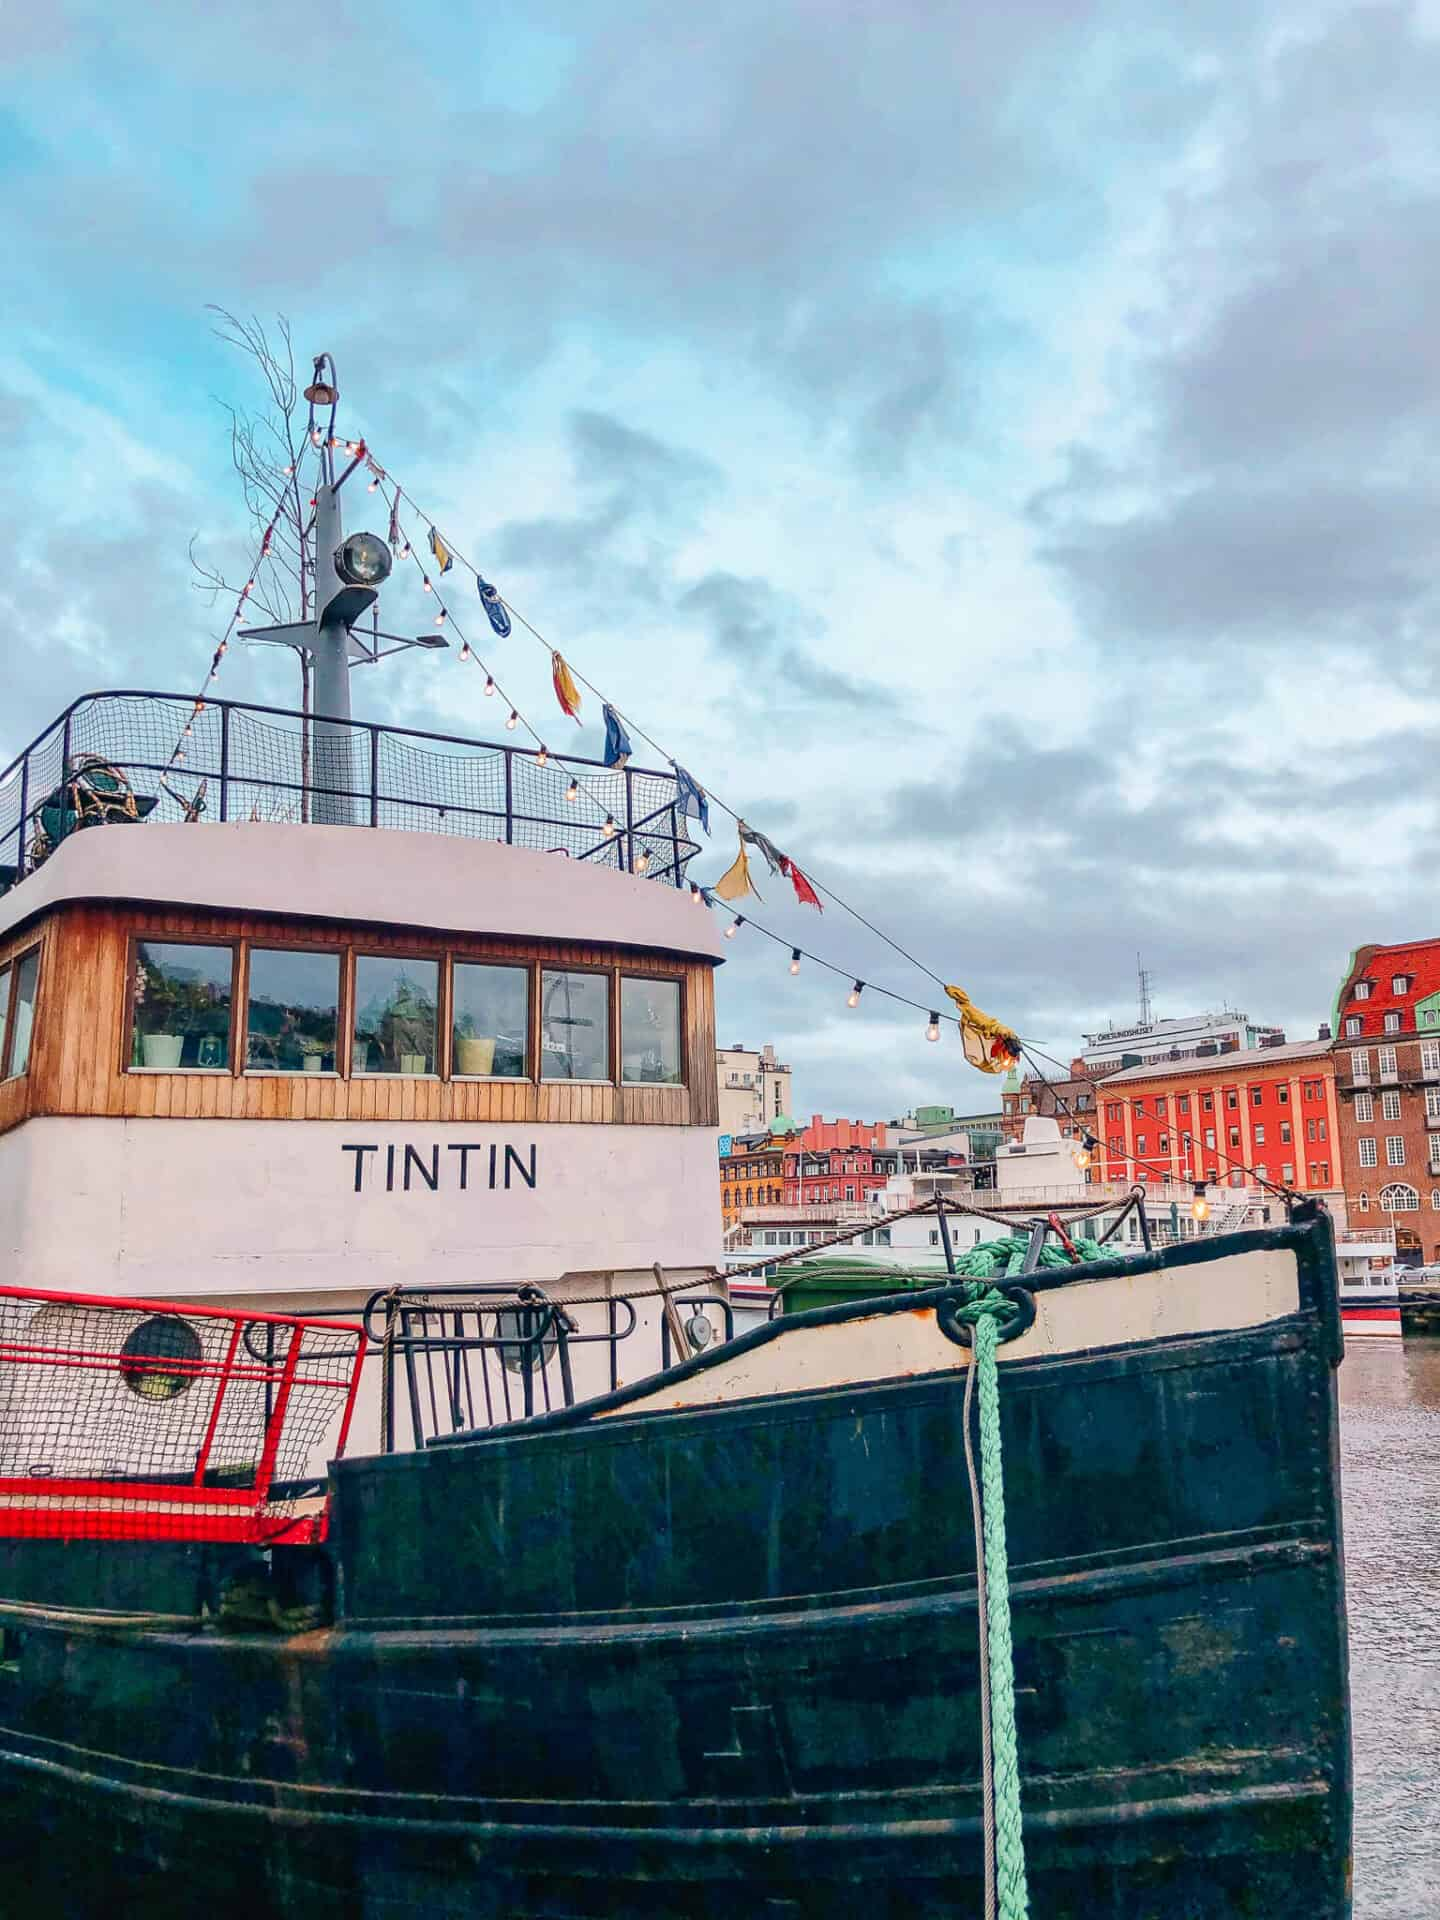 A green white and cream boat, titled Tin Tin